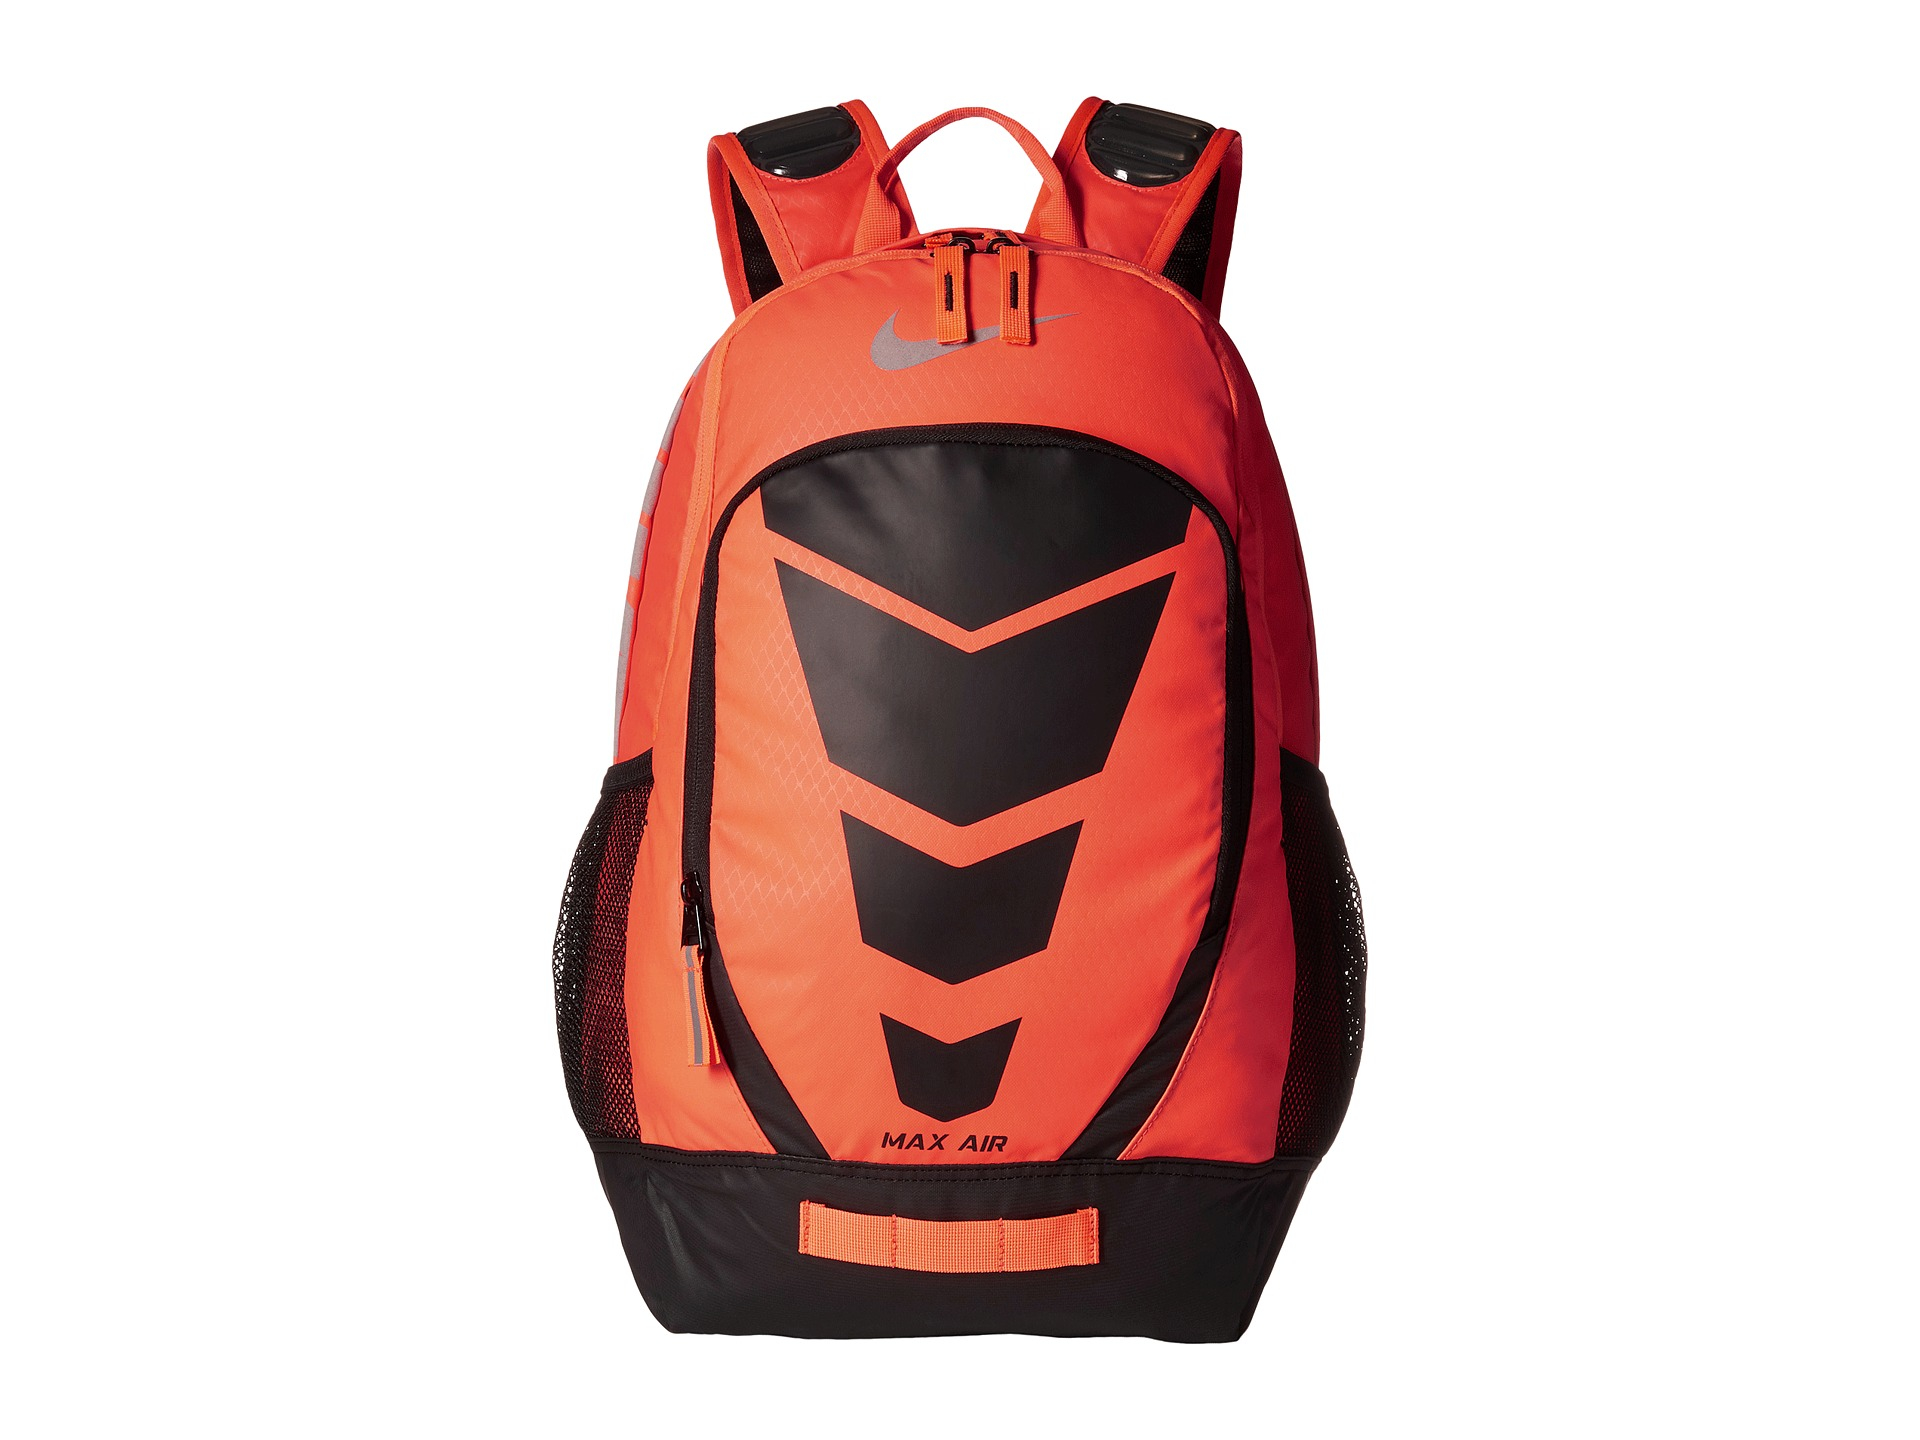 Lyst - Nike Max Air Vapor Backpack in Orange for Men 02345e84777e8